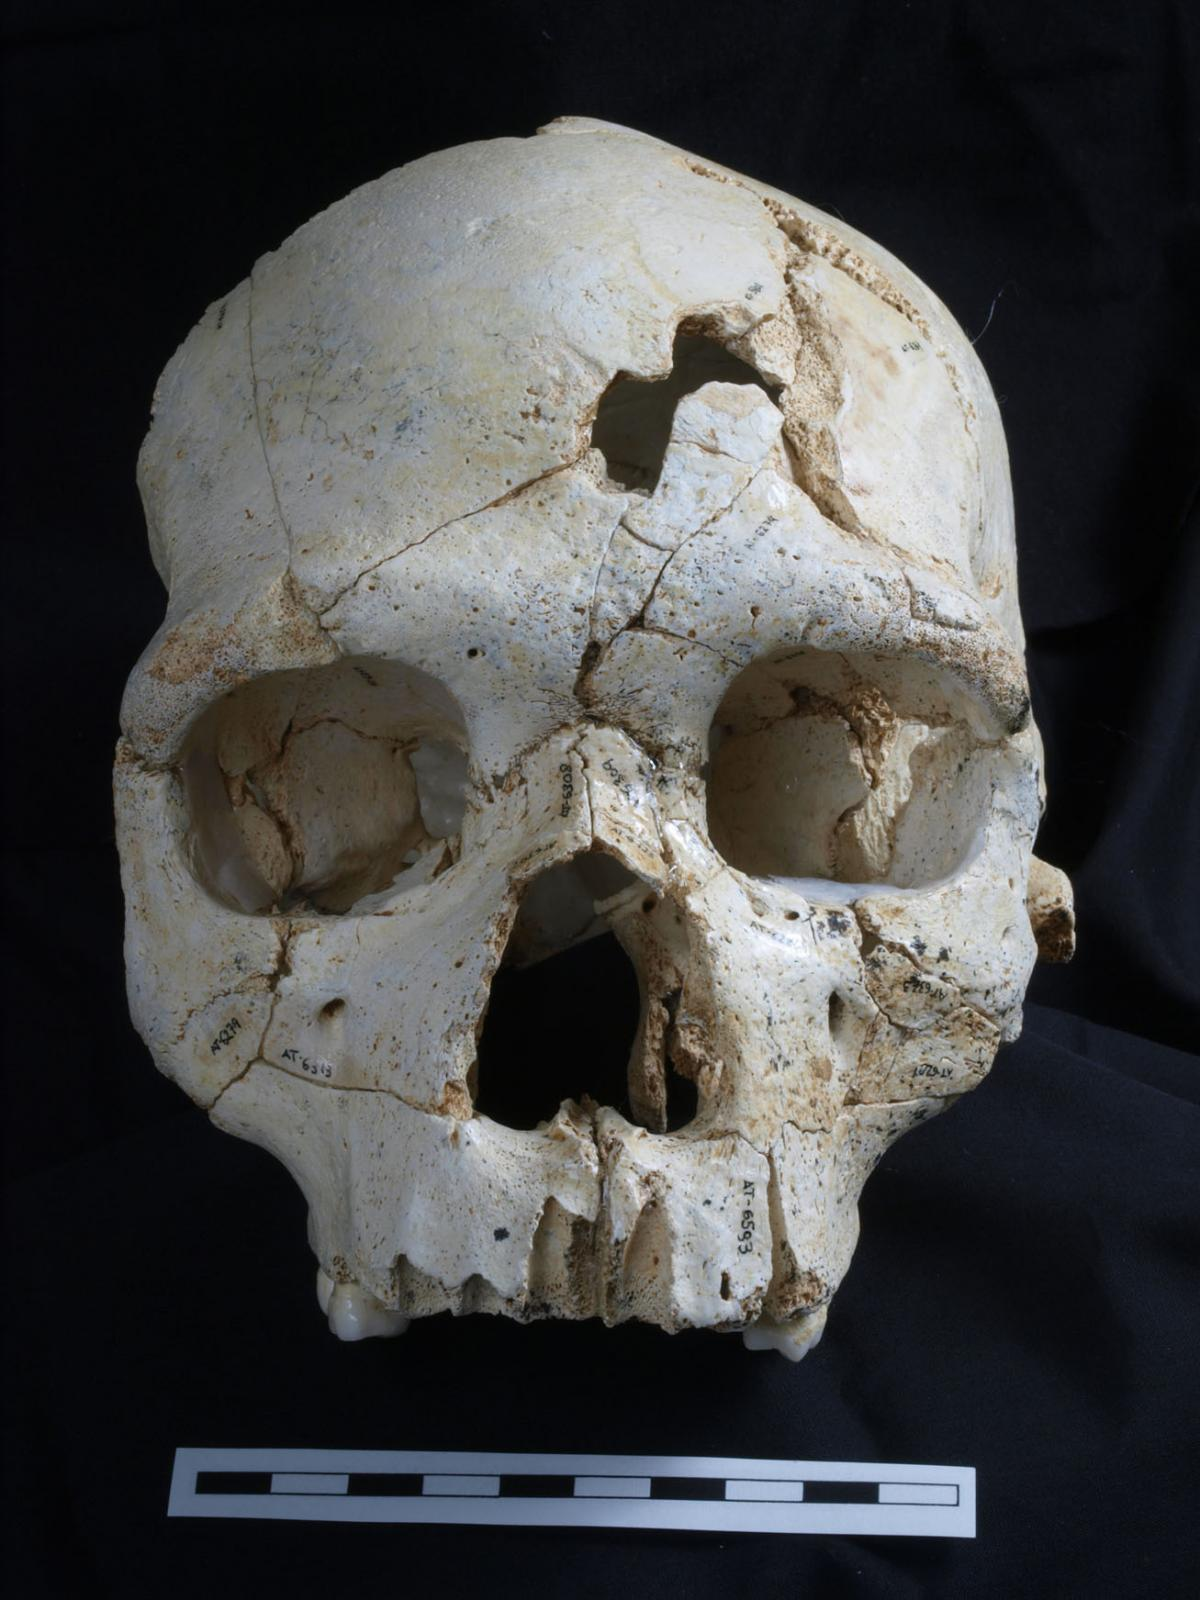 A team of scientists say they've discovered evidence of a 435,000 year old murder, based on evidence from the injuries on this skull.